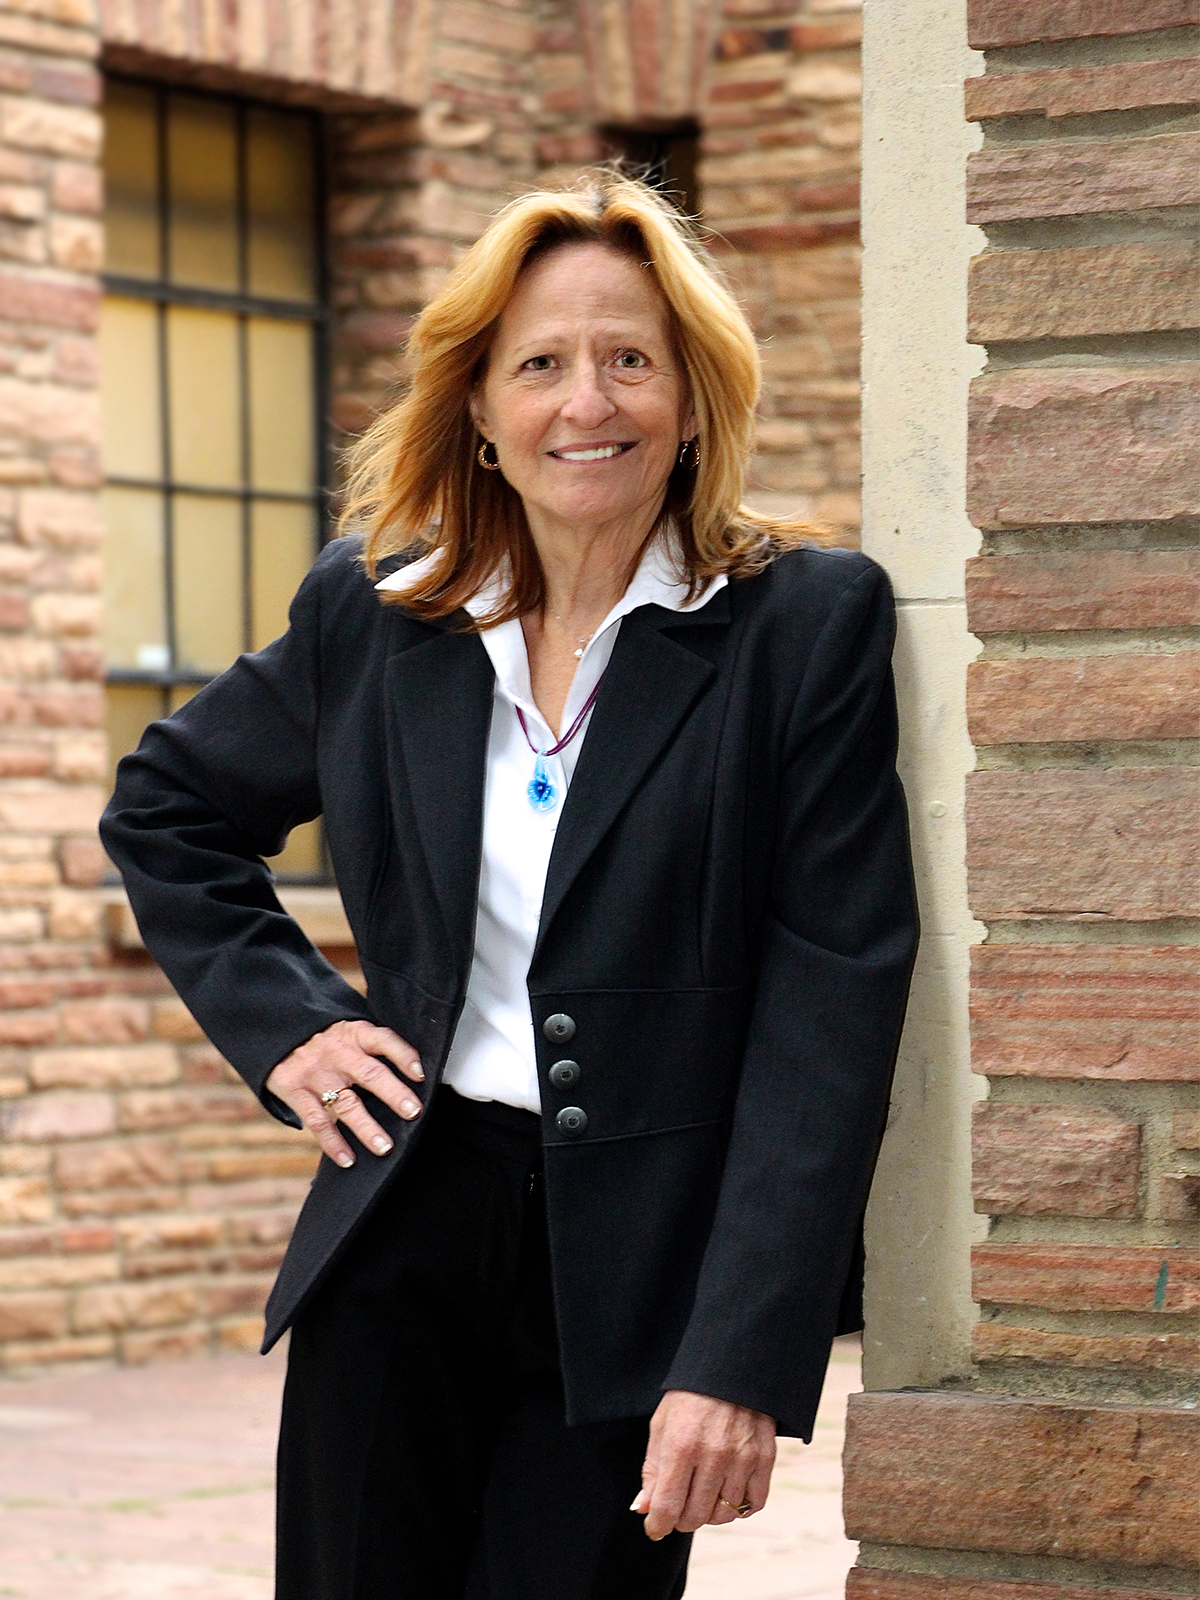 Susi Brunkhardt  - Principal and Founder